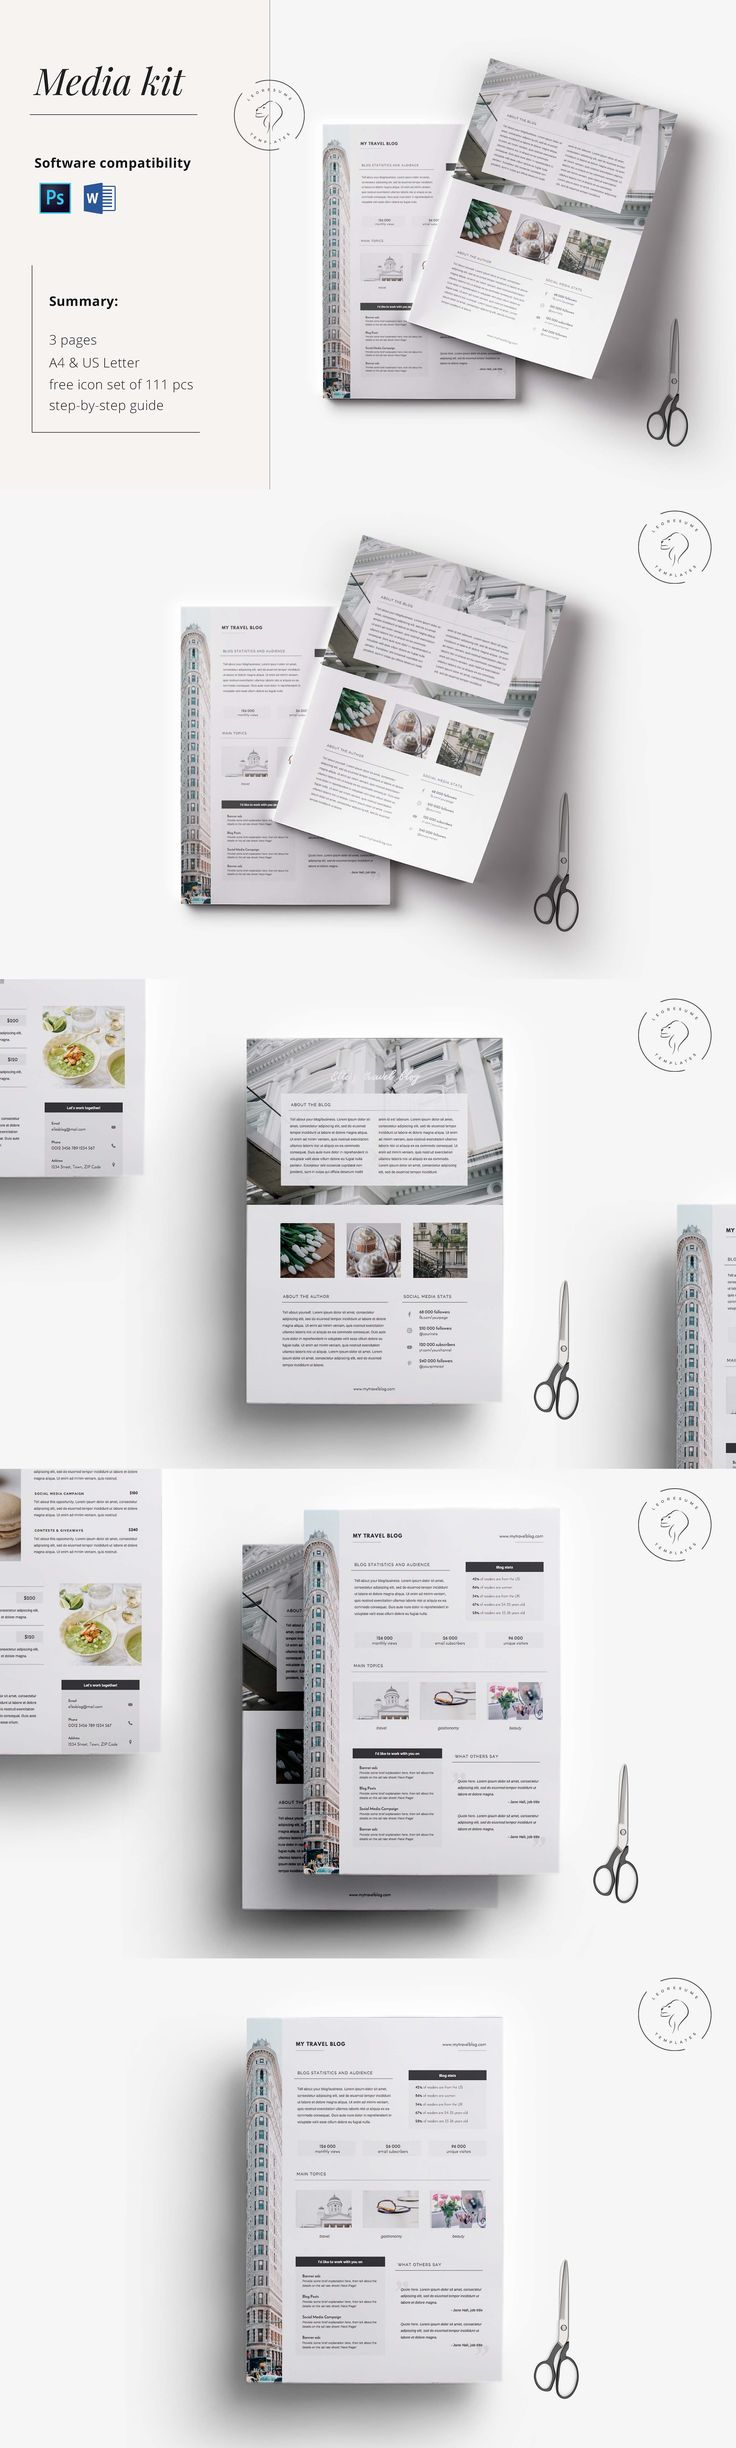 press kit cover letter + 5-page media kit template in docx format + 1-page cover letter + 1-page blog/website rate sheet + 1-page instagram rate sheet + 2 sizes: a4 + us letter + user guide + uses free fonts + free icon pack containing 102 social media + personal interest icons + photographs not included.